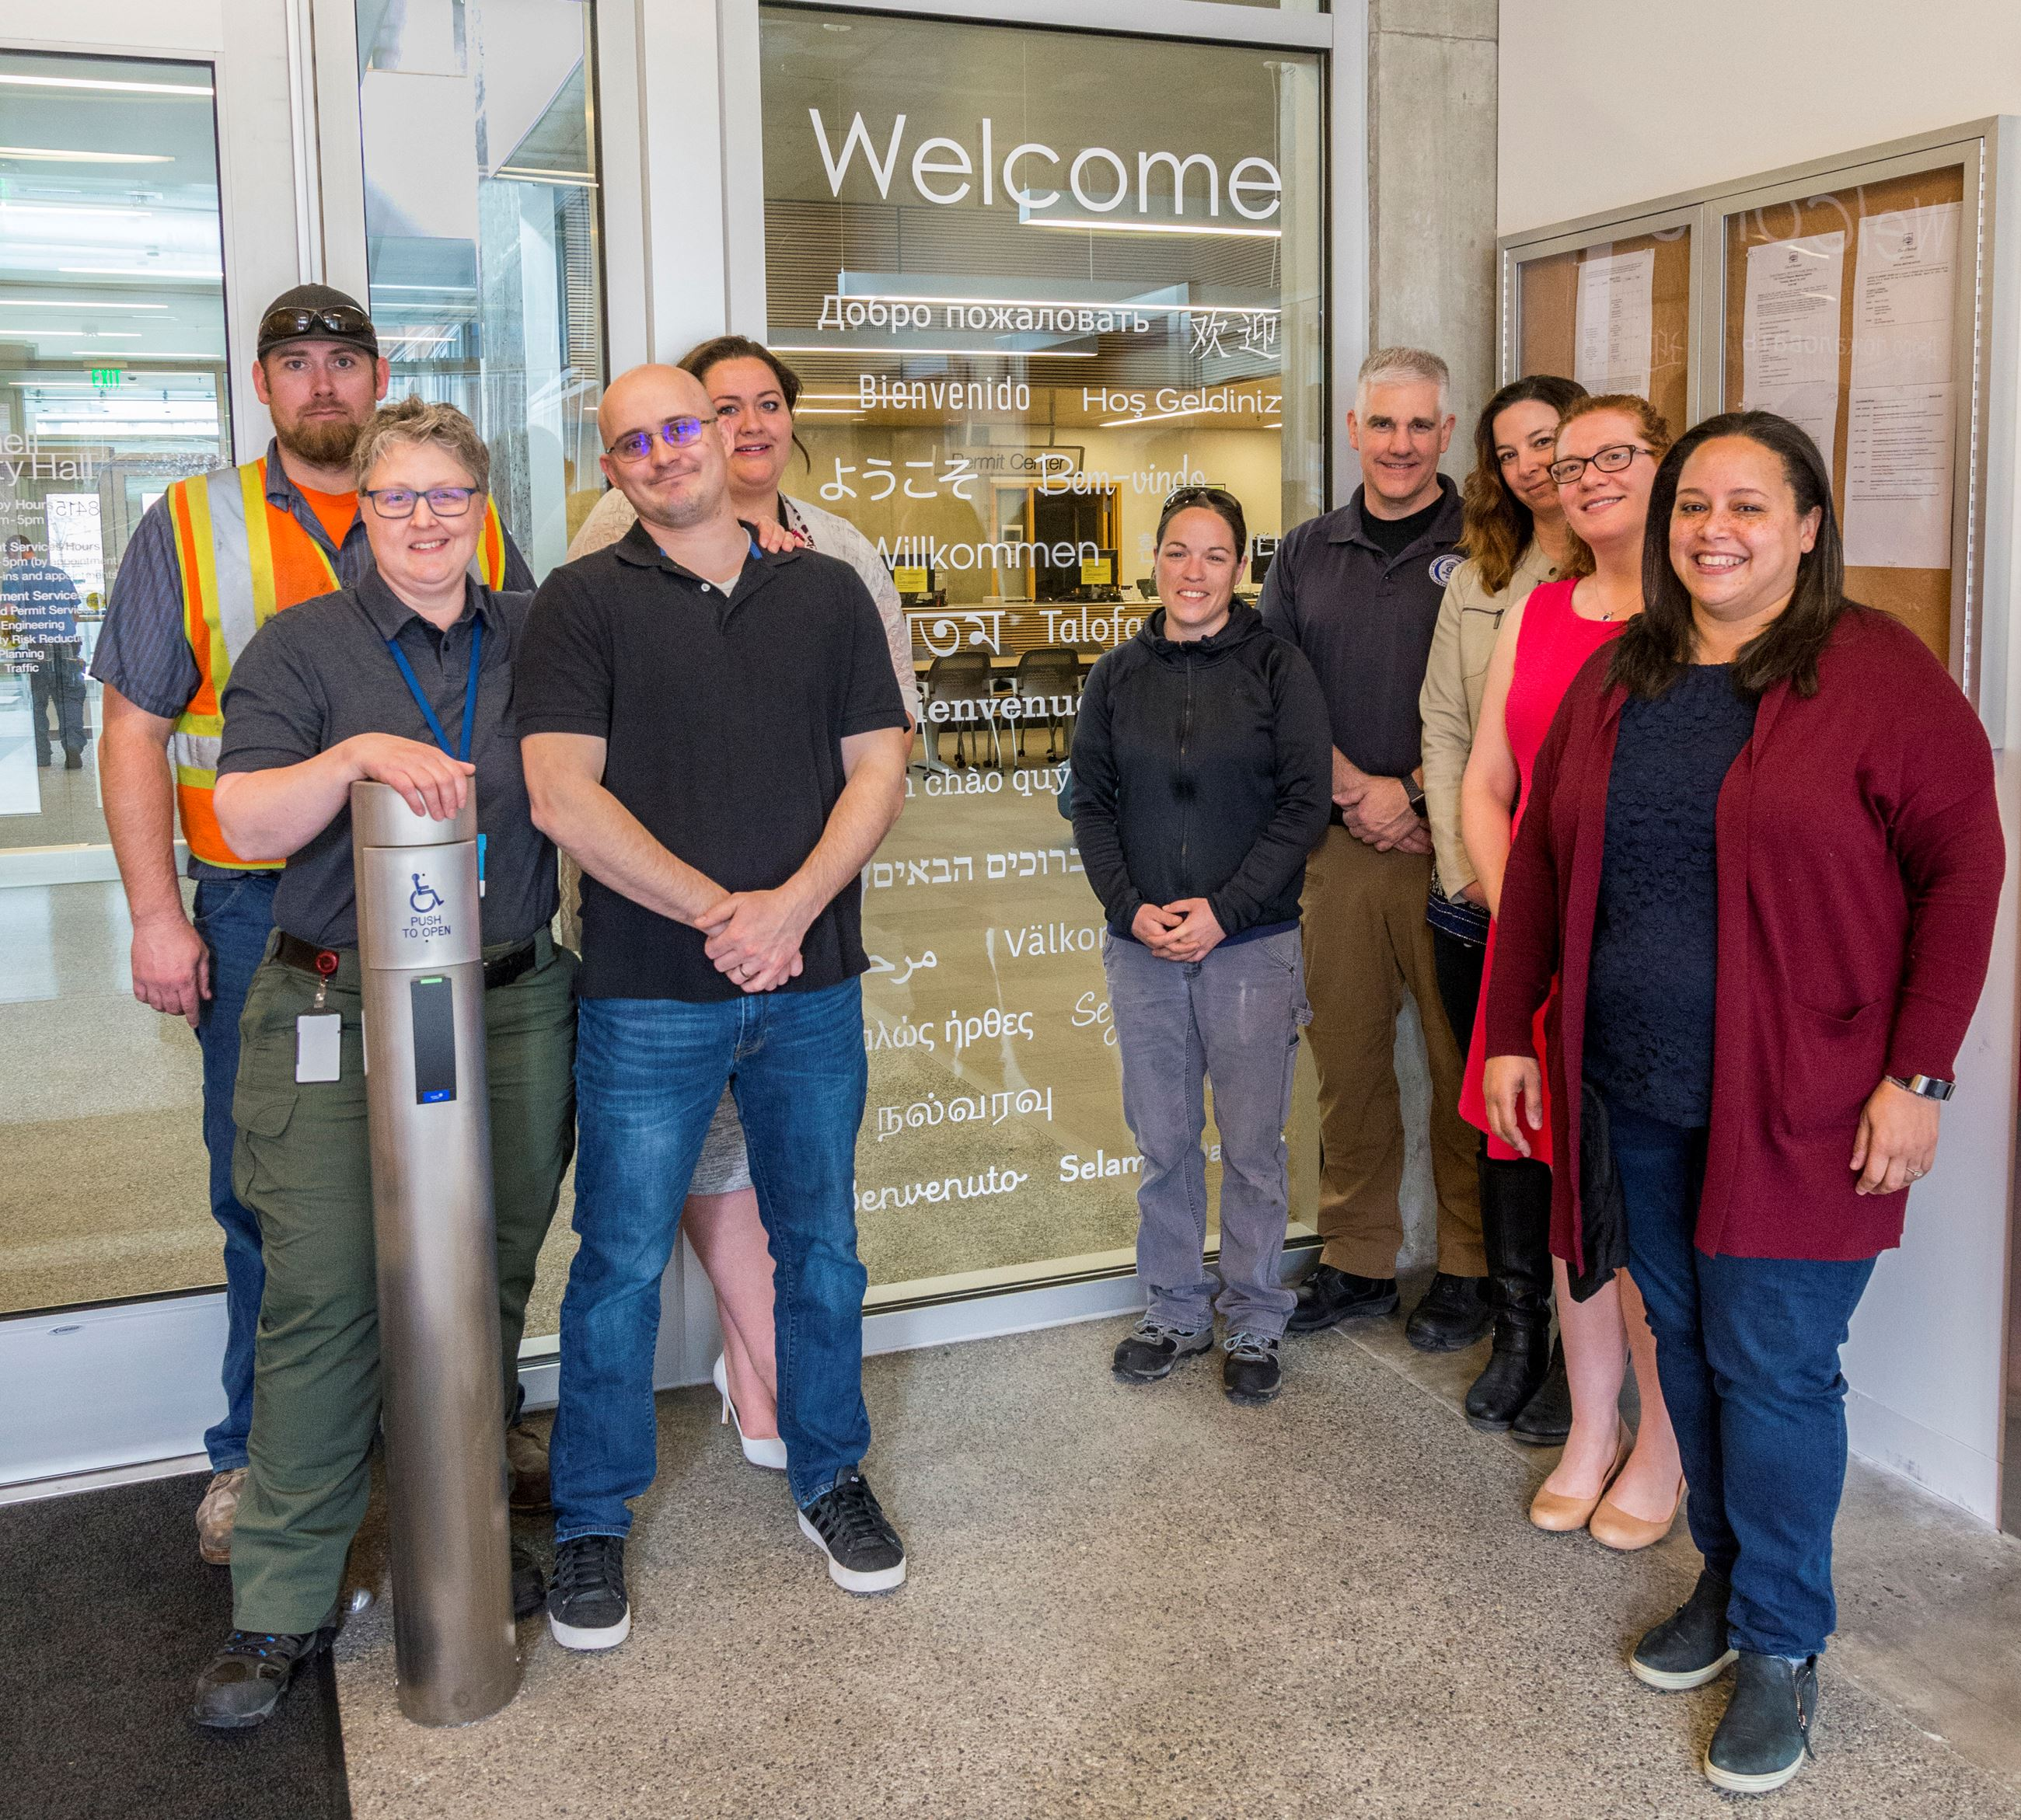 Image of 2019 Diversity & Inclusion Team with the WelcomeSign